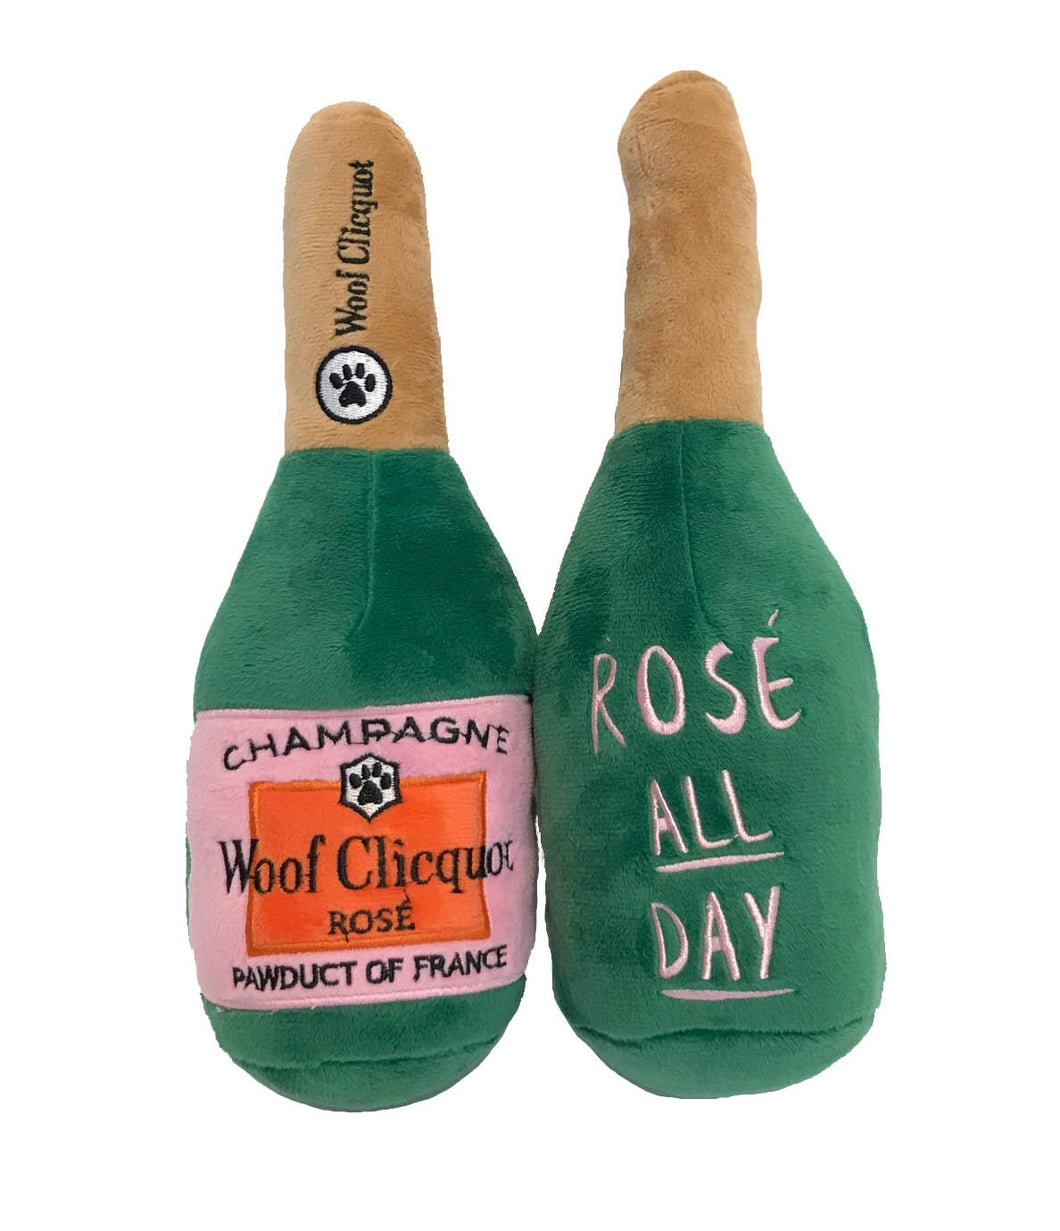 Woof Clicquot Rose Champagne Bottle